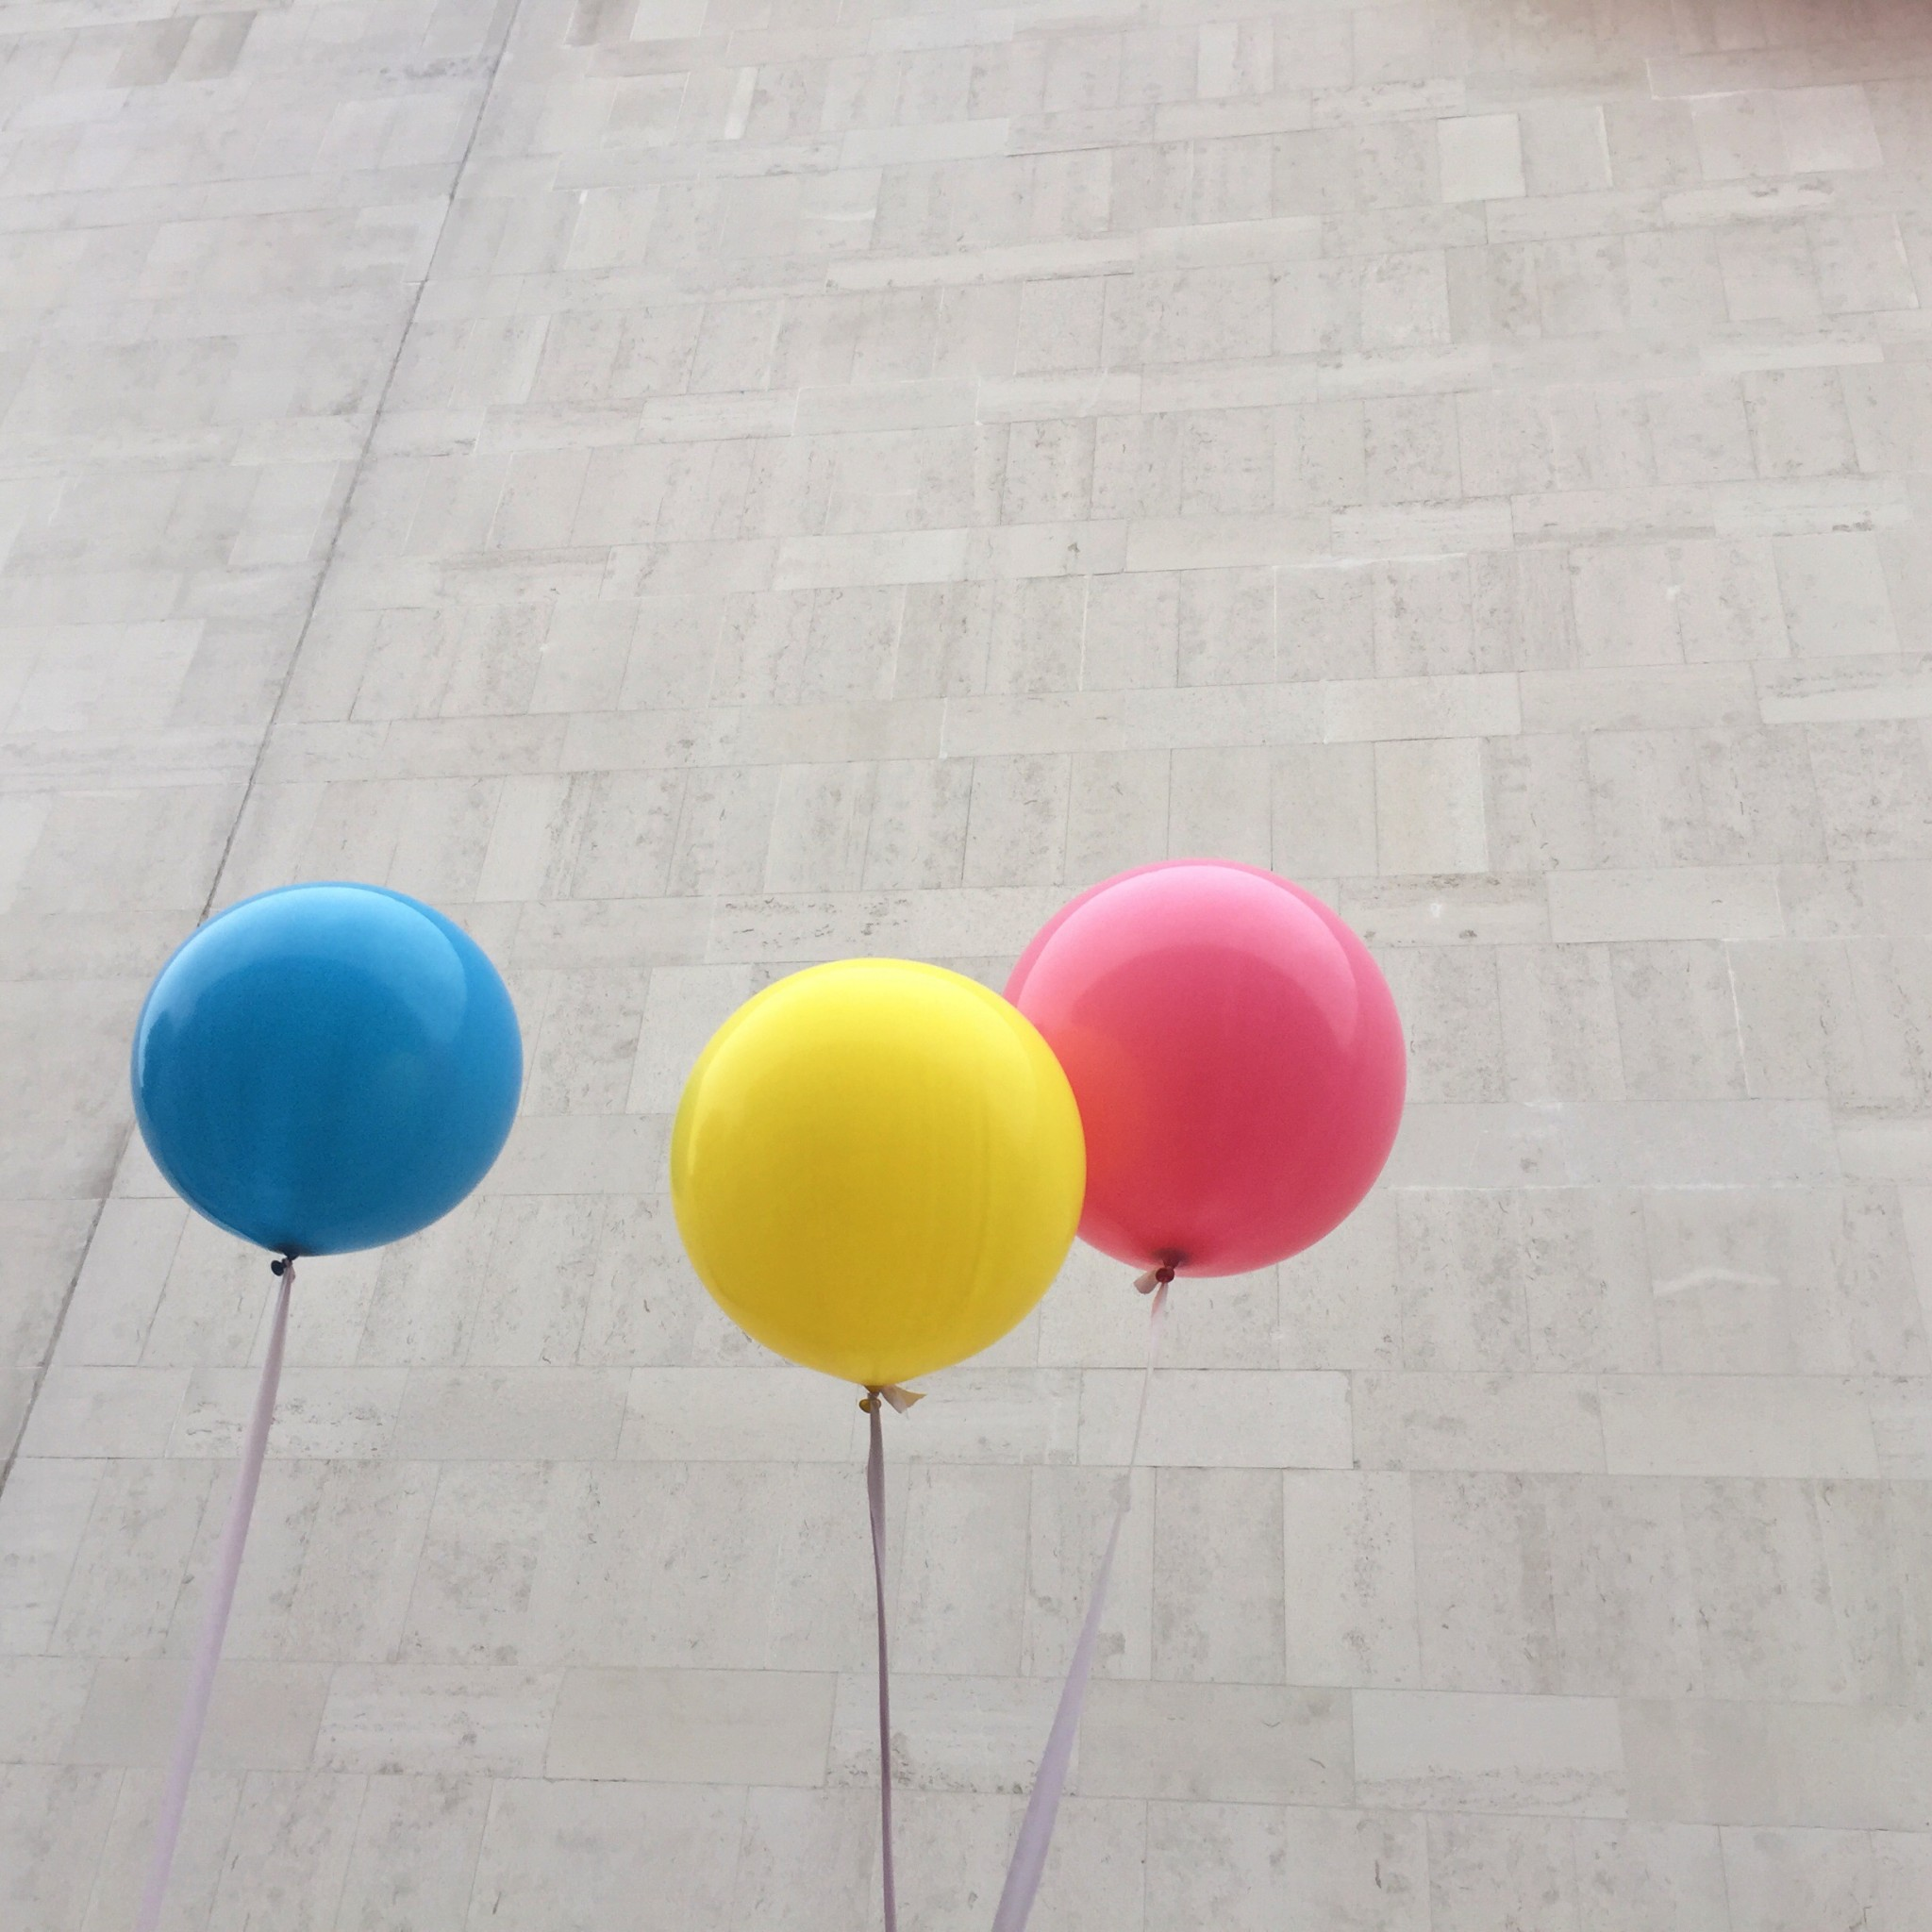 Blogtacular balloons | Hello! Hooray!